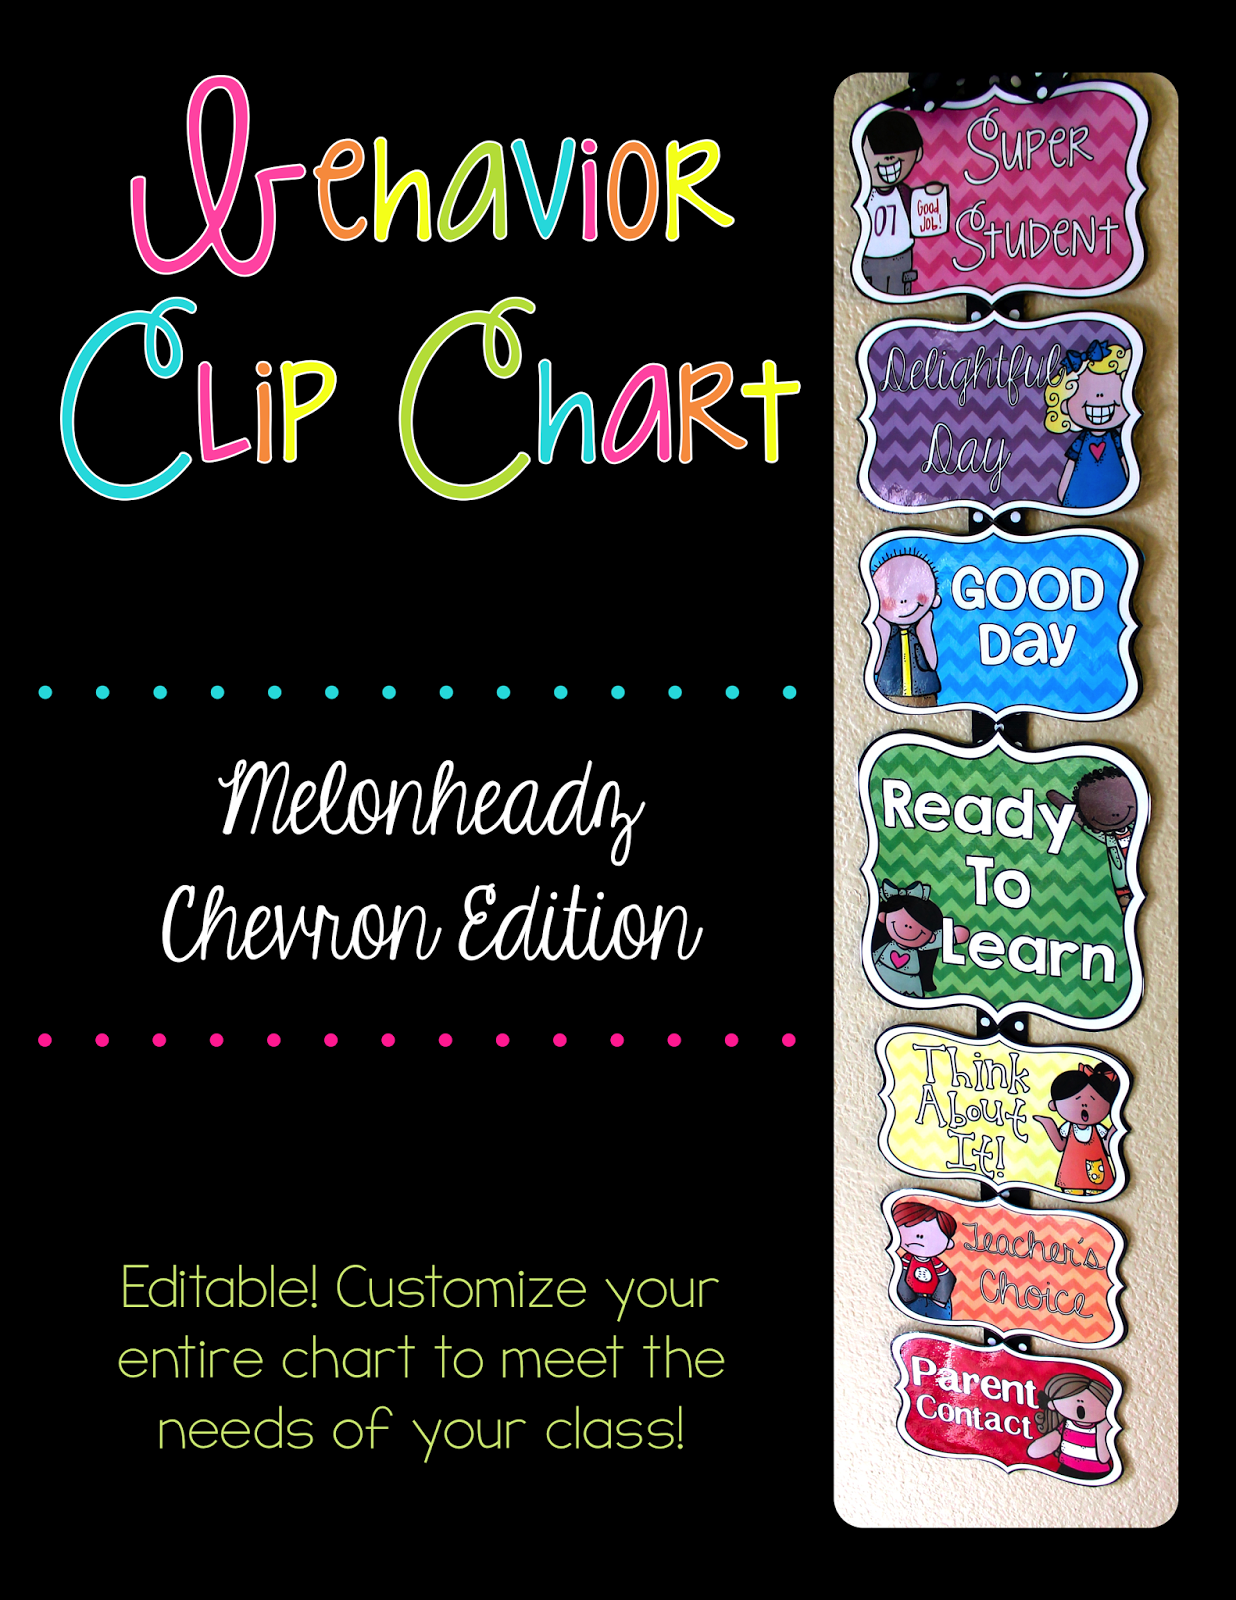 http://www.teacherspayteachers.com/Product/Editable-Behavior-Chart-Melonheadz-Chevron-Edition-1336807